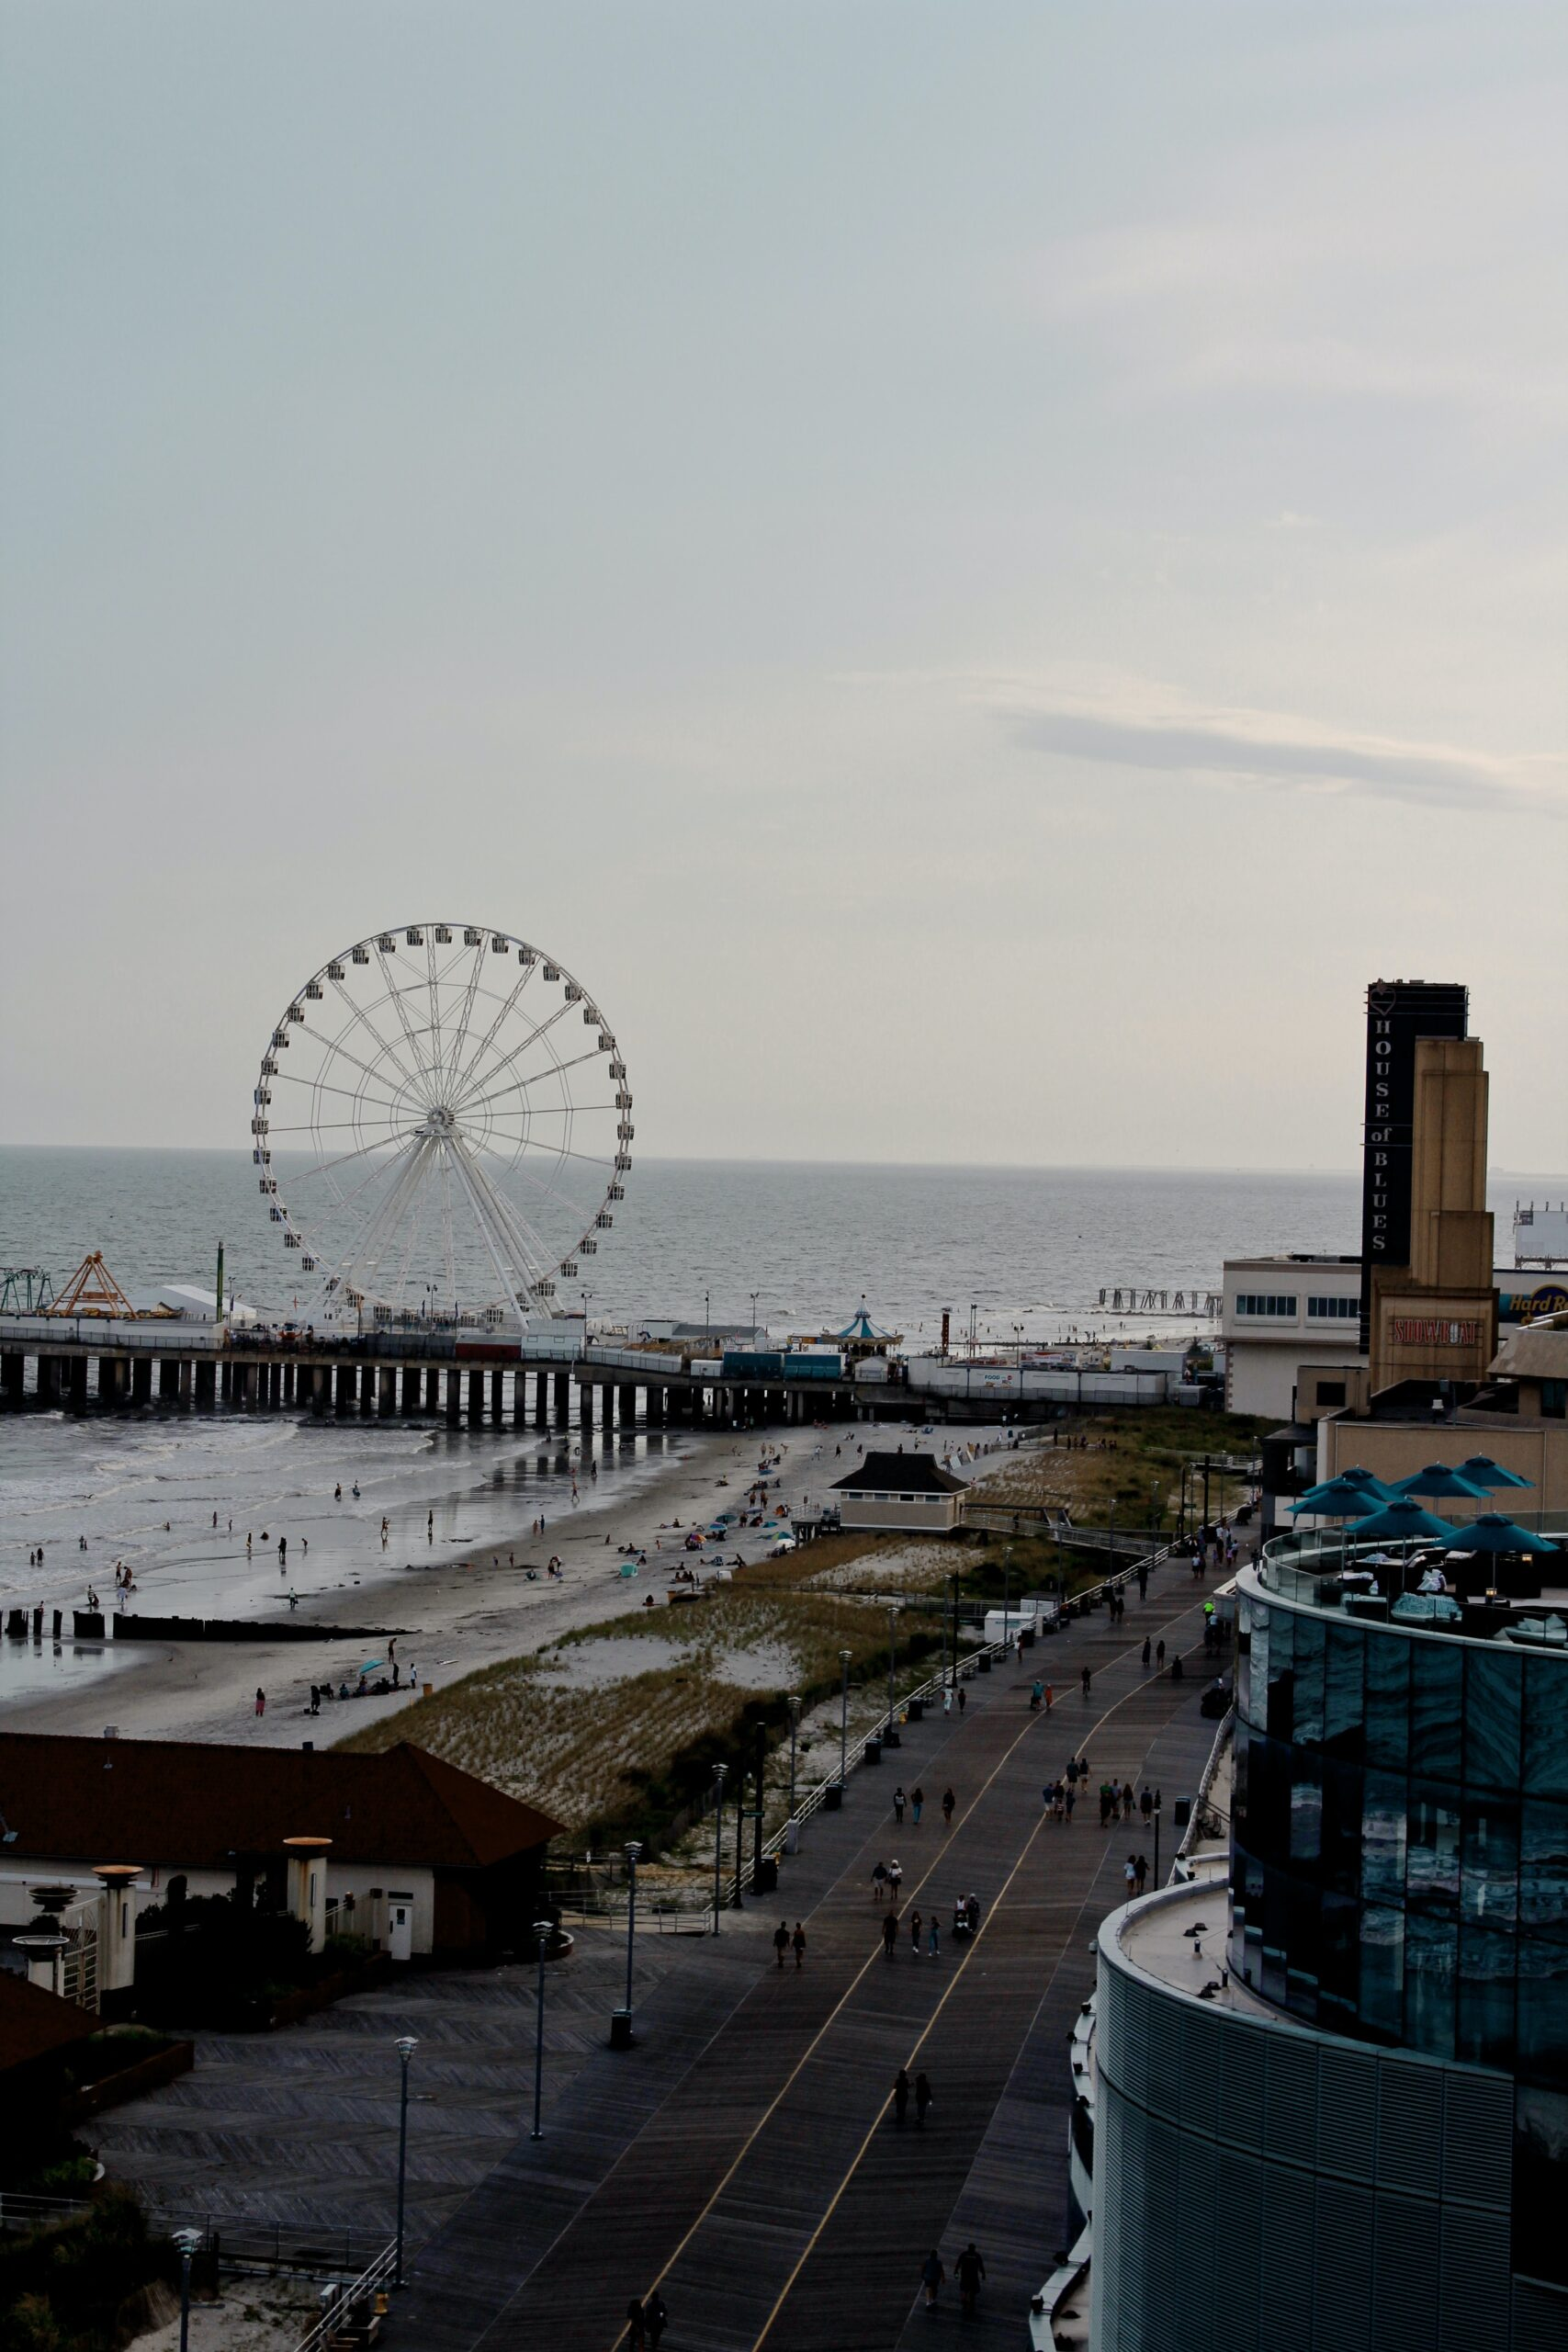 chermel-porter-Atlantic City view of Ferris Wheel and boardwalk-unsplash